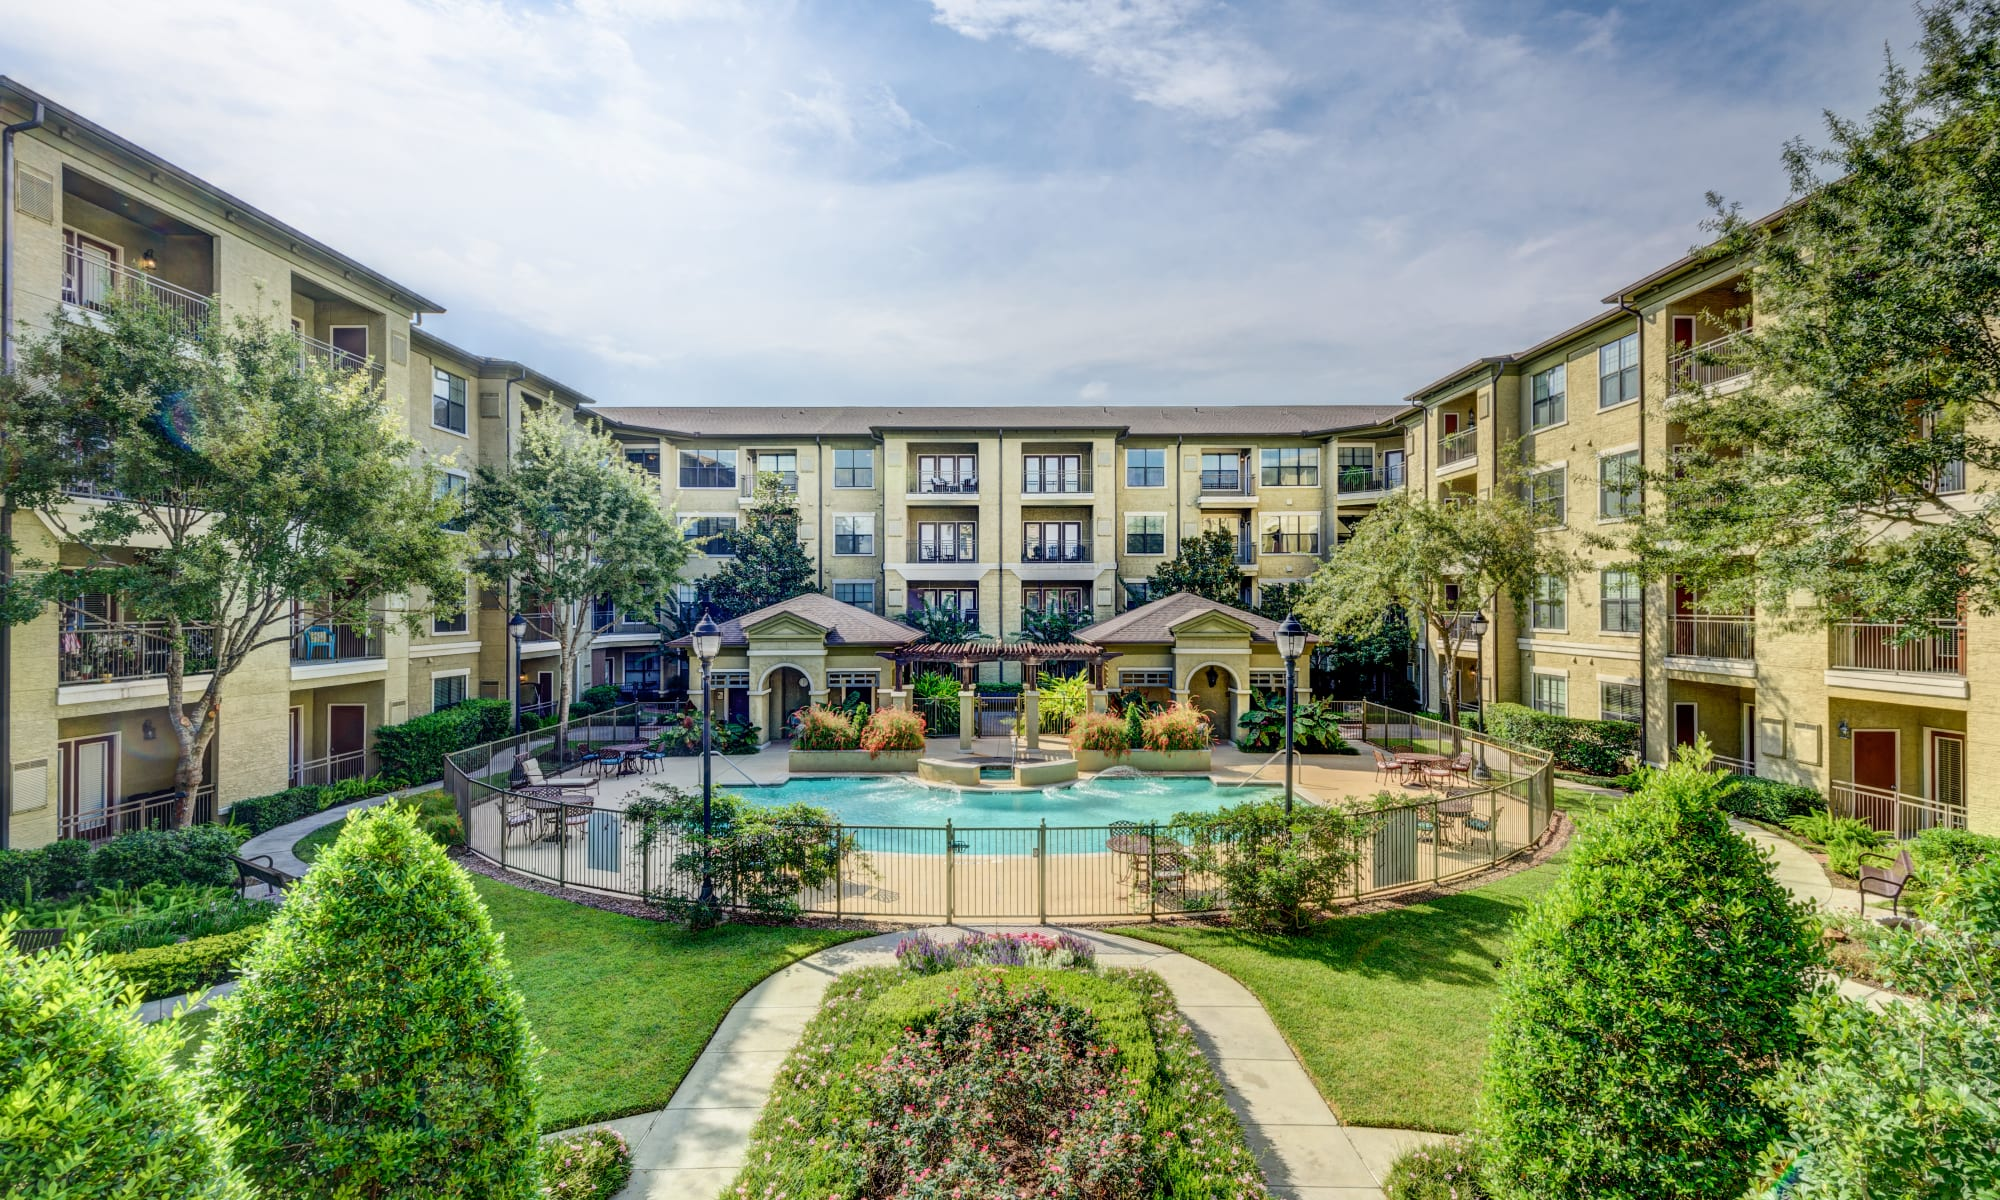 Save up to $6,500 on all-inclusive senior living